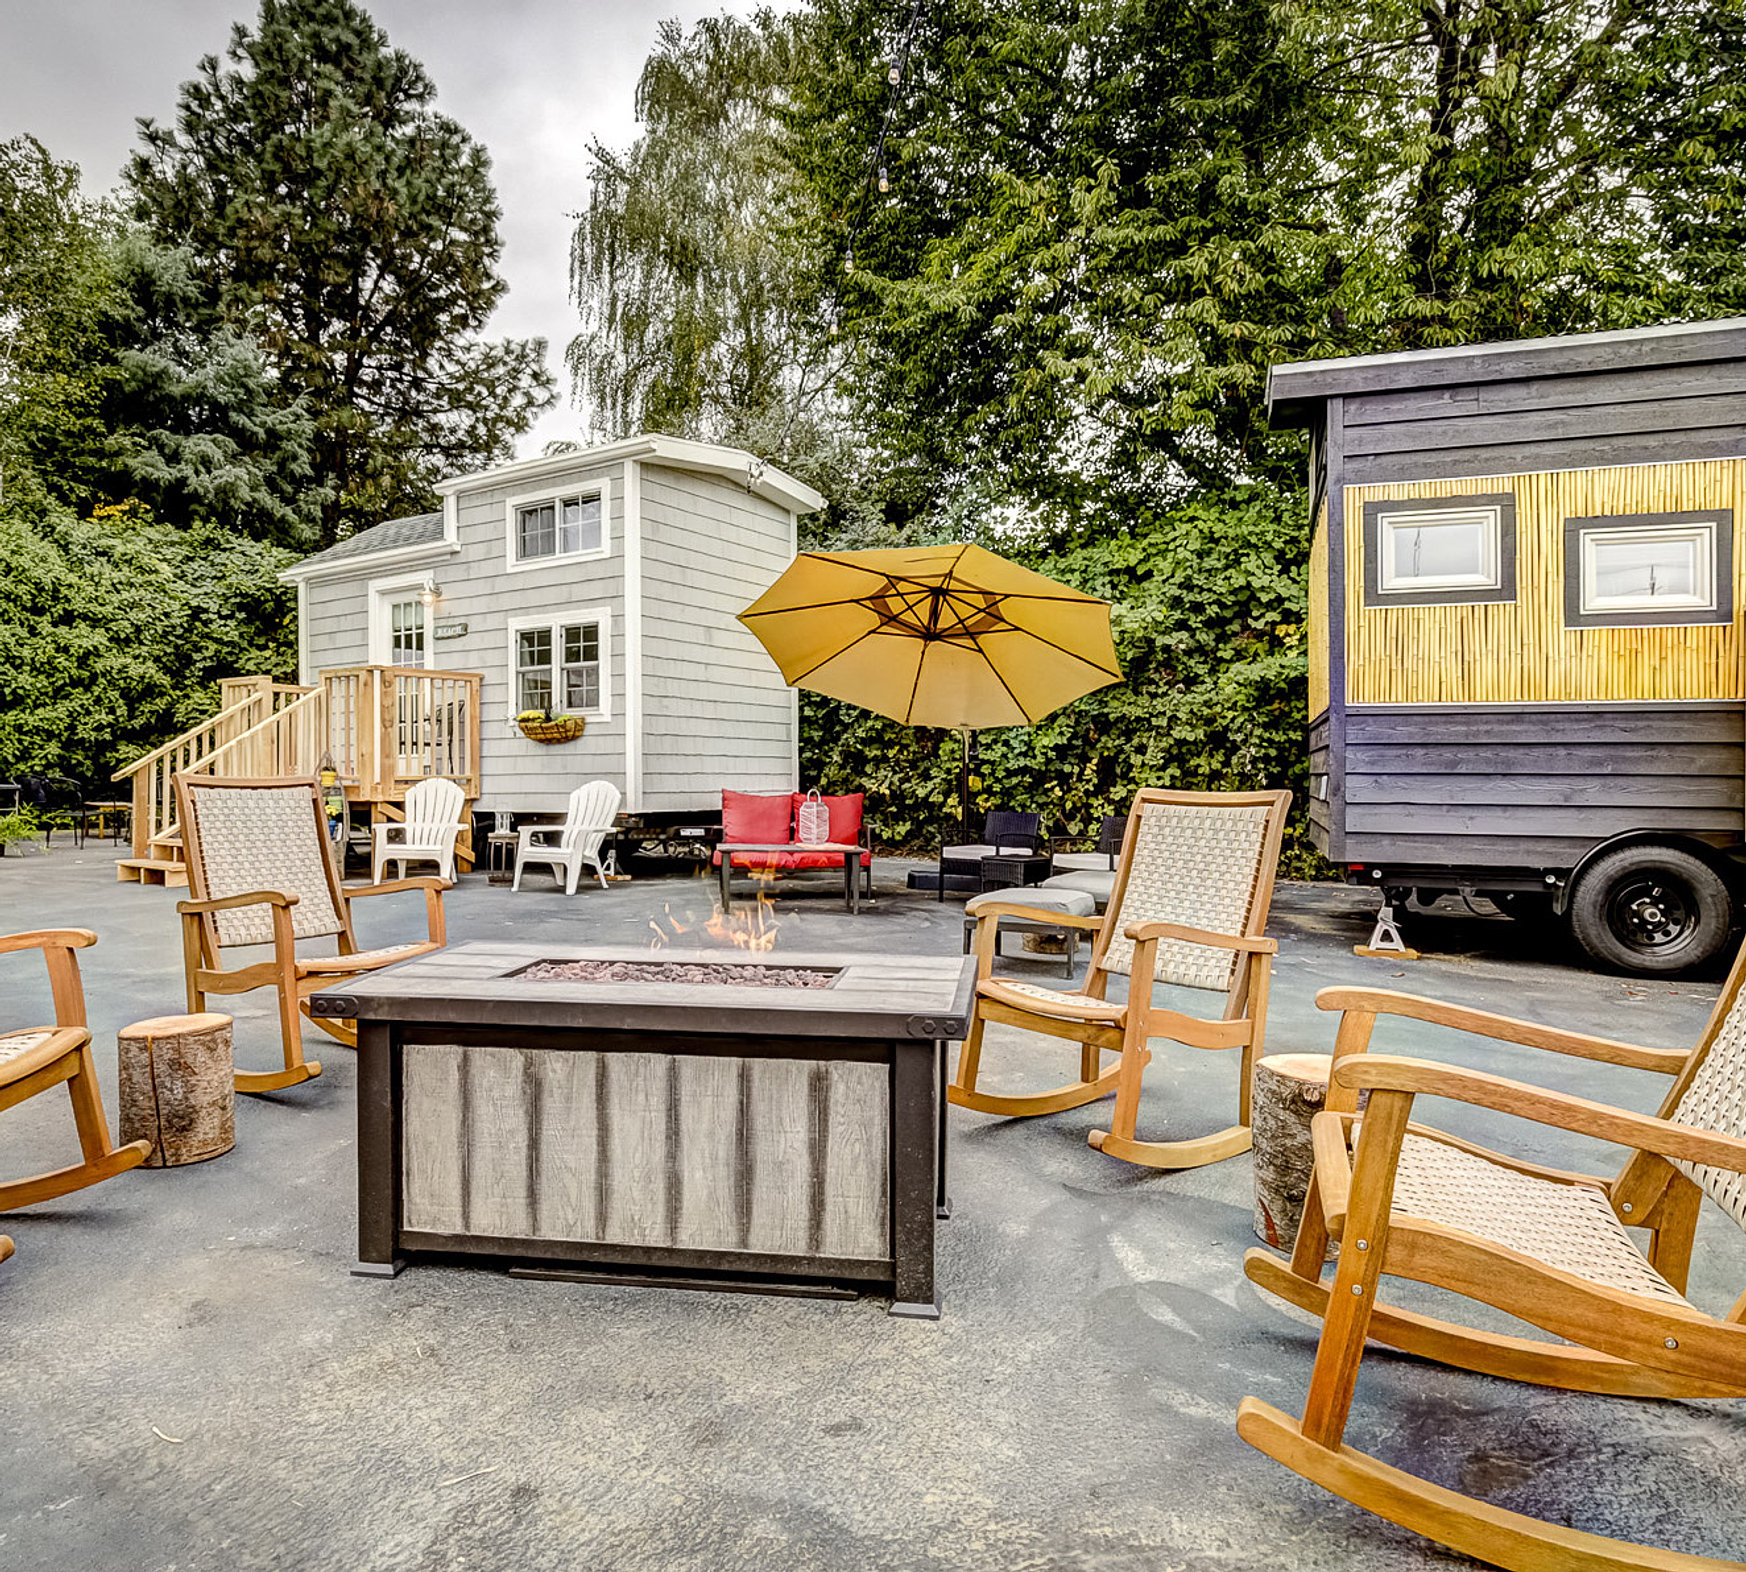 Tiny Digs Hotel of Tiny Houses Portland